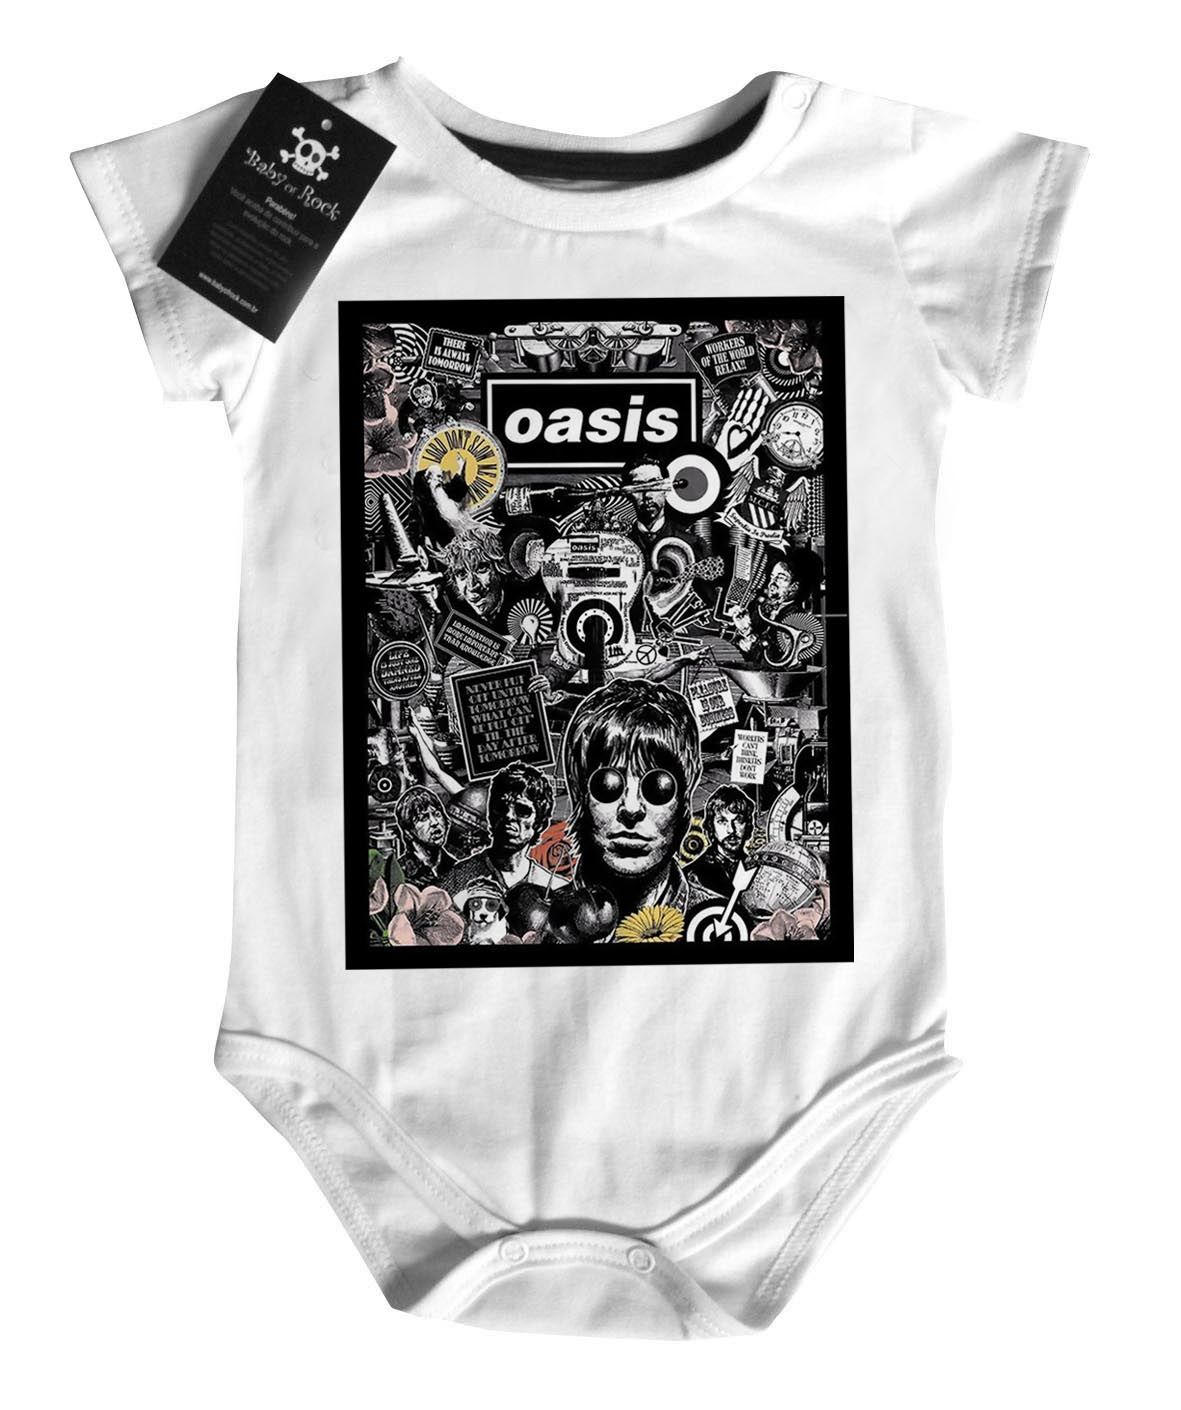 Body Bebe do Rock Oasis White   - Baby Monster - Body Bebe